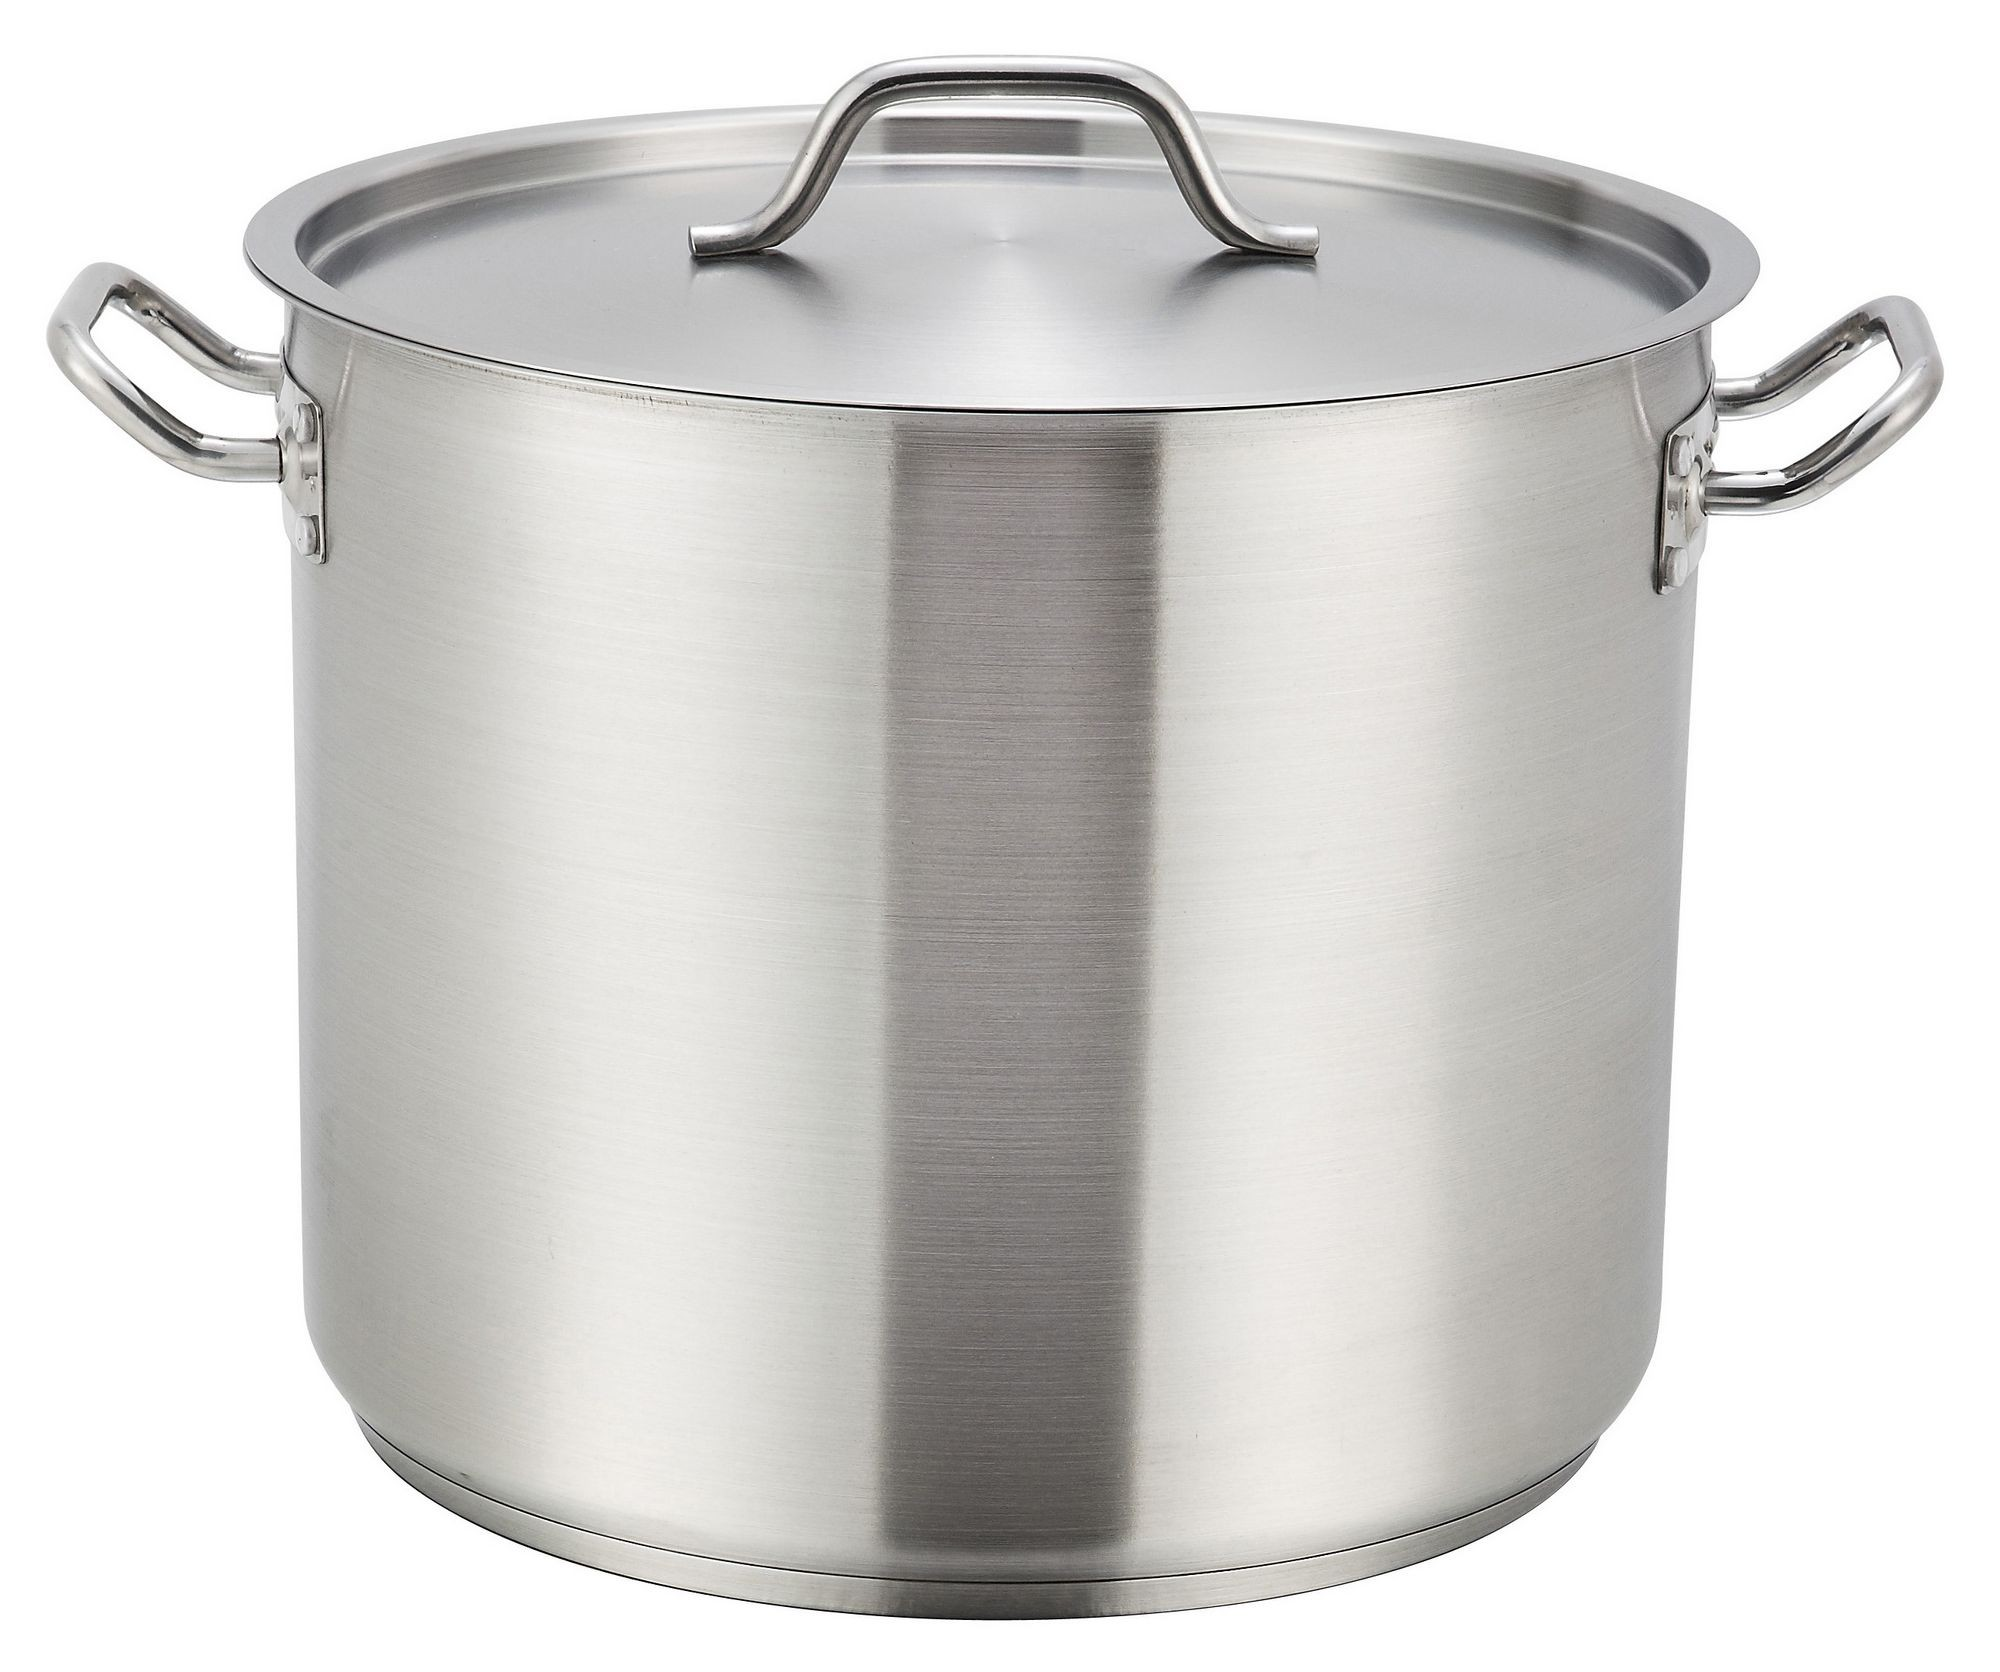 Stainless Steel 24-Qt Stock Pot